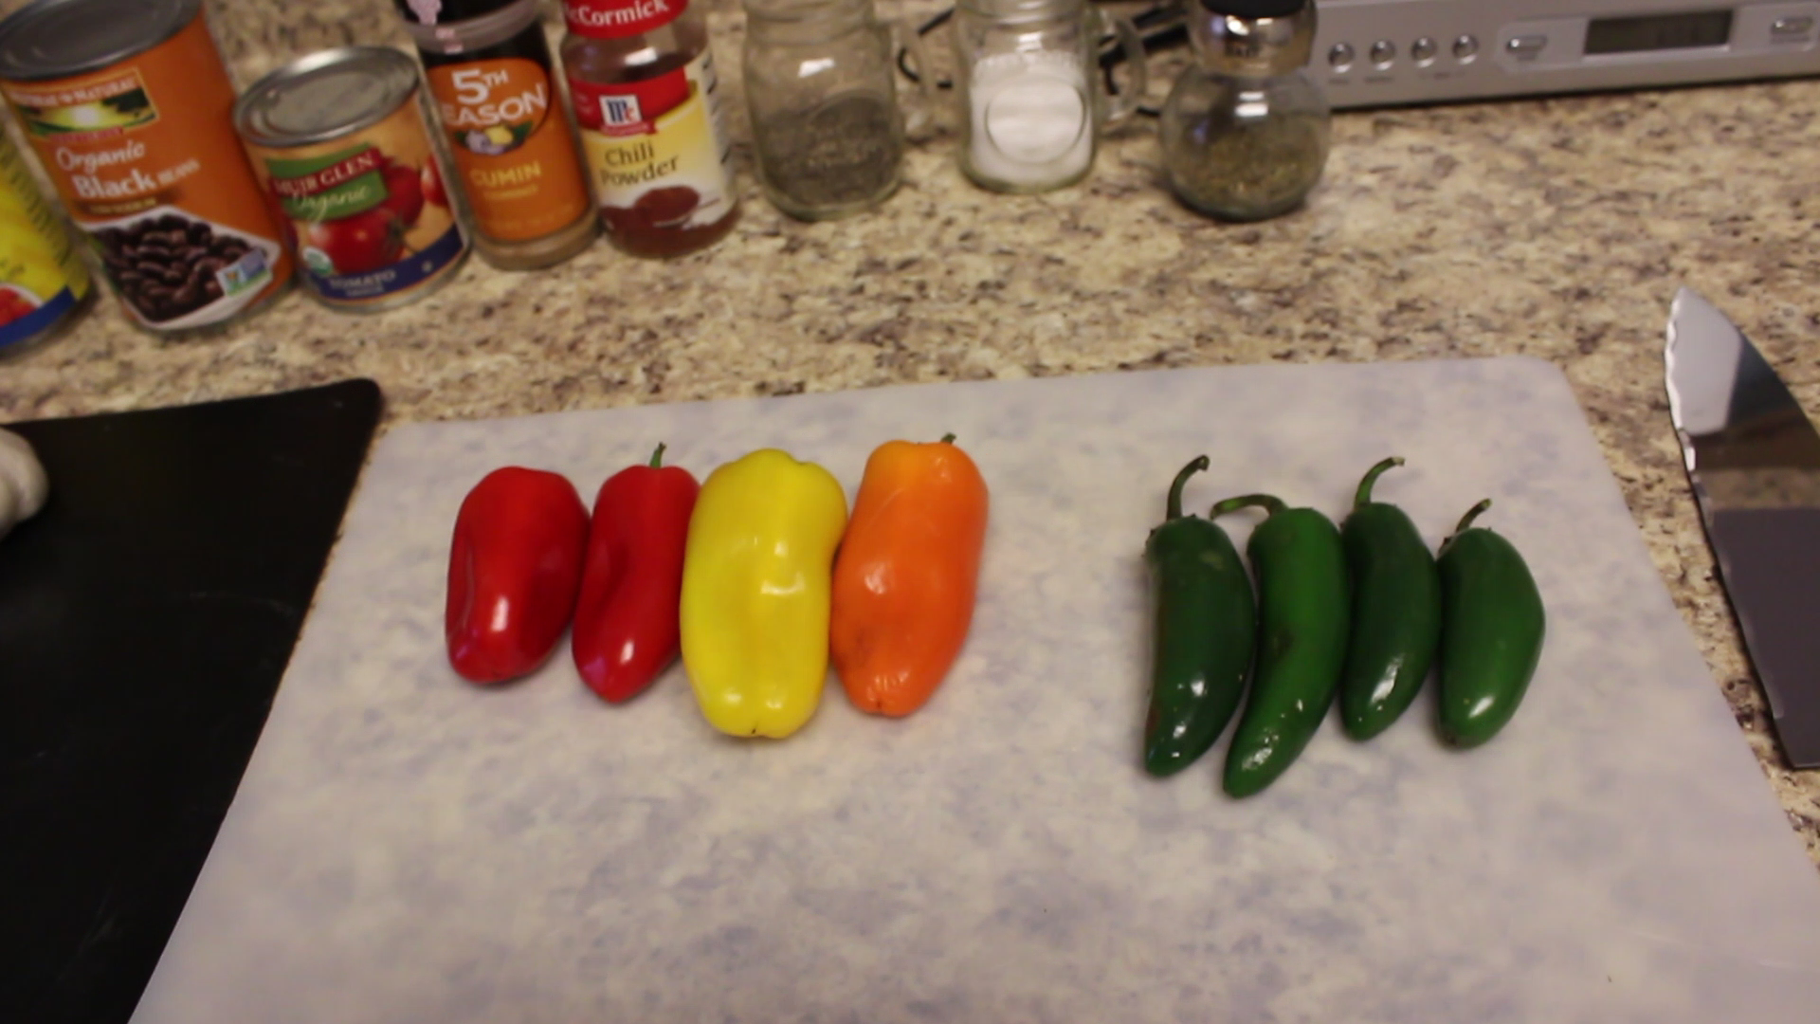 Let's Make Some Chili